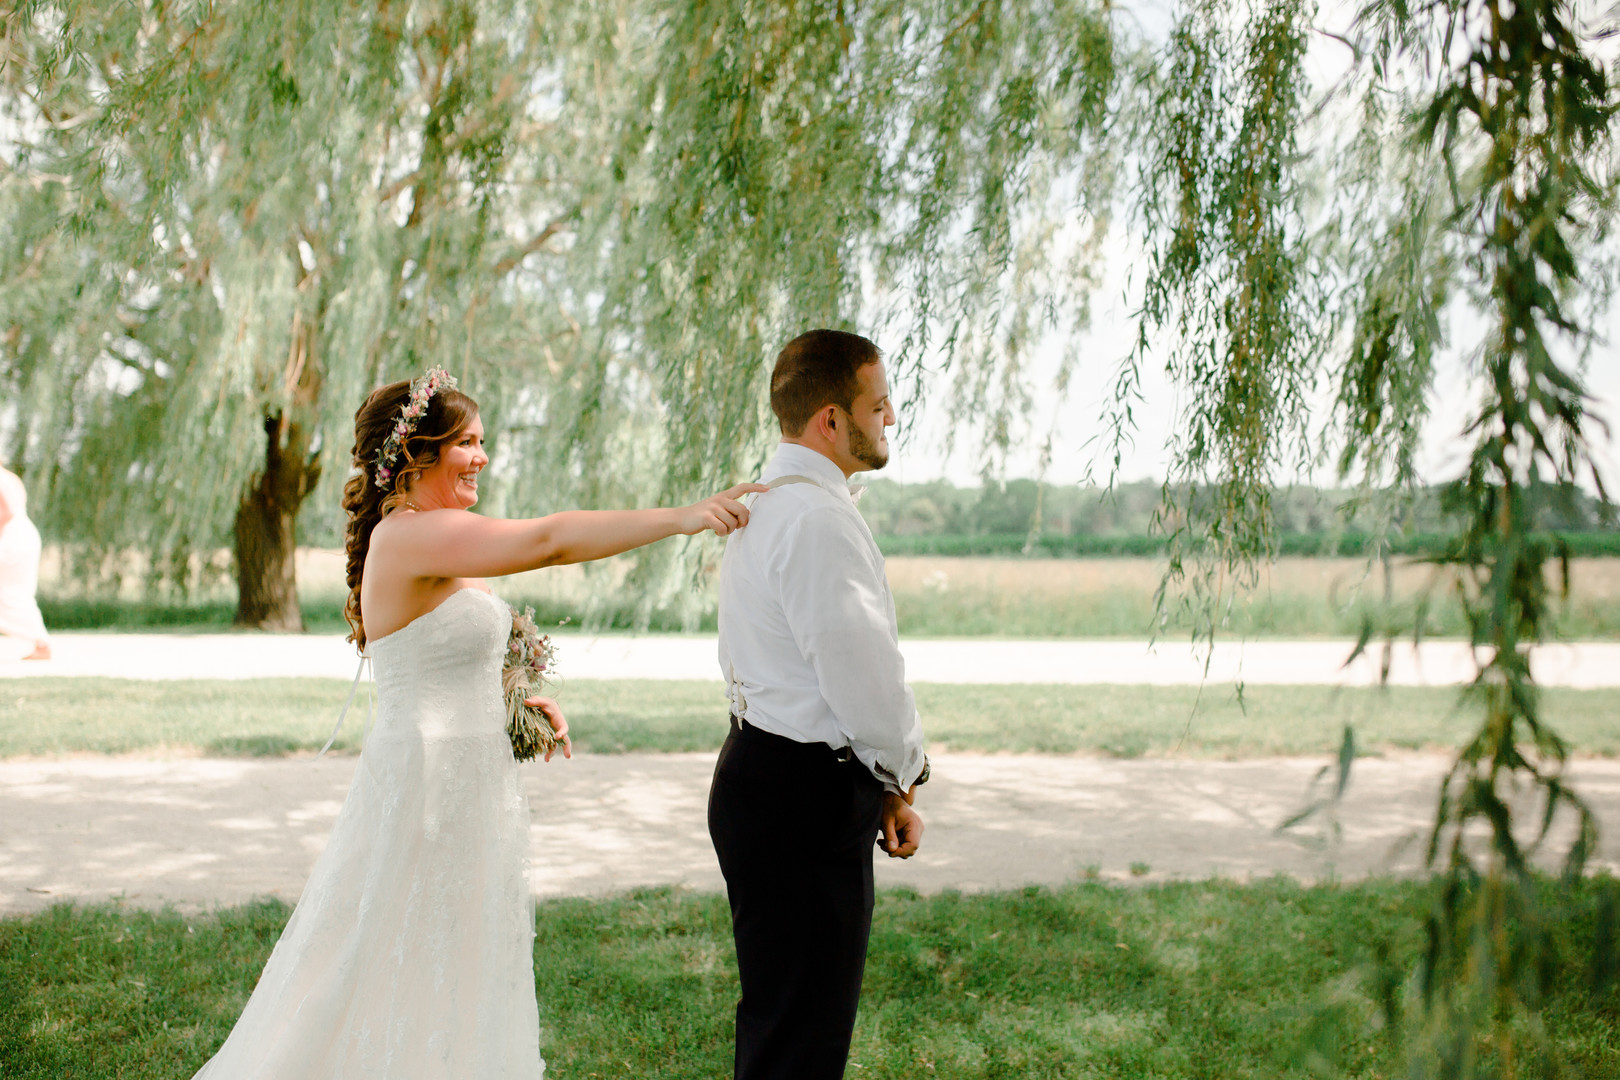 Bride and groom's first look: Rustic country wedding in Minooka, IL captured by Katie Brsan Photography. Visit CHItheeWED.com for more wedding inspiration!